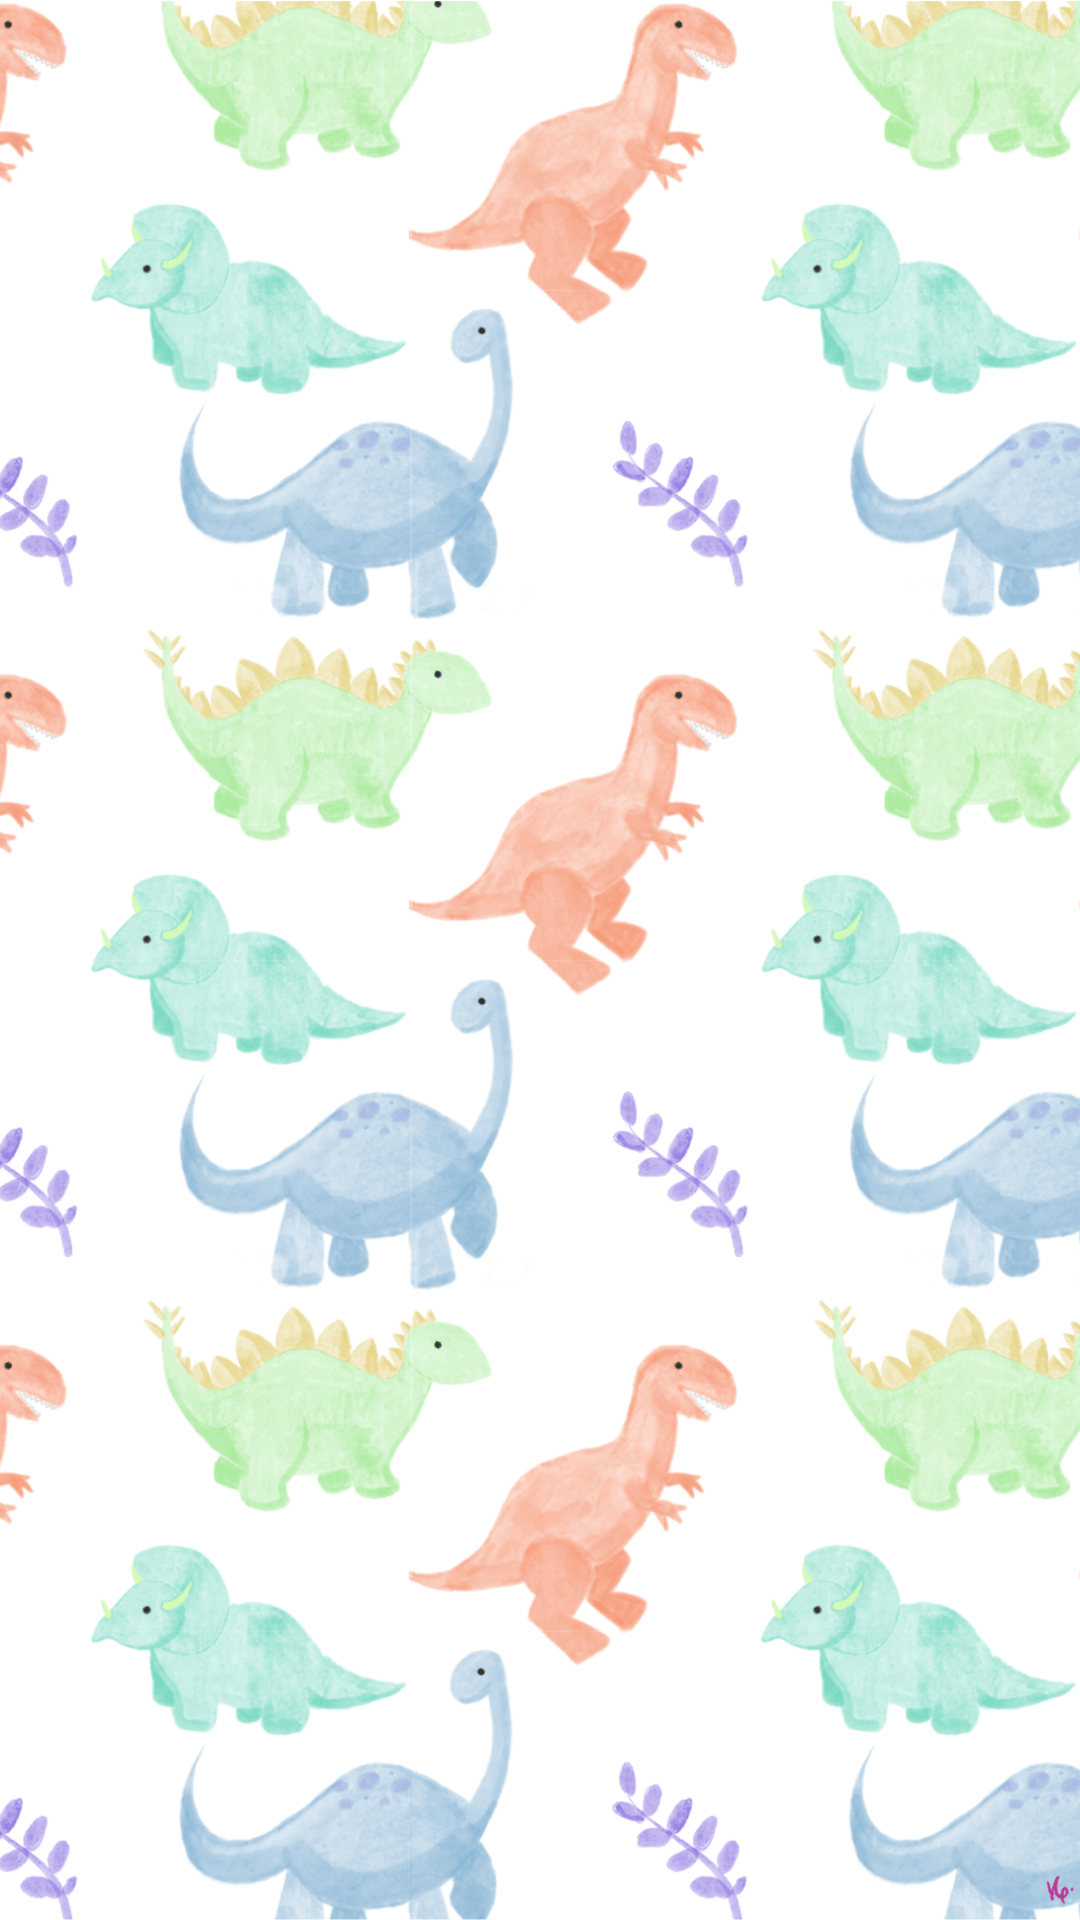 Dinosaur Aesthetic Wallpapers Top Free Dinosaur Aesthetic Backgrounds Wallpaperaccess